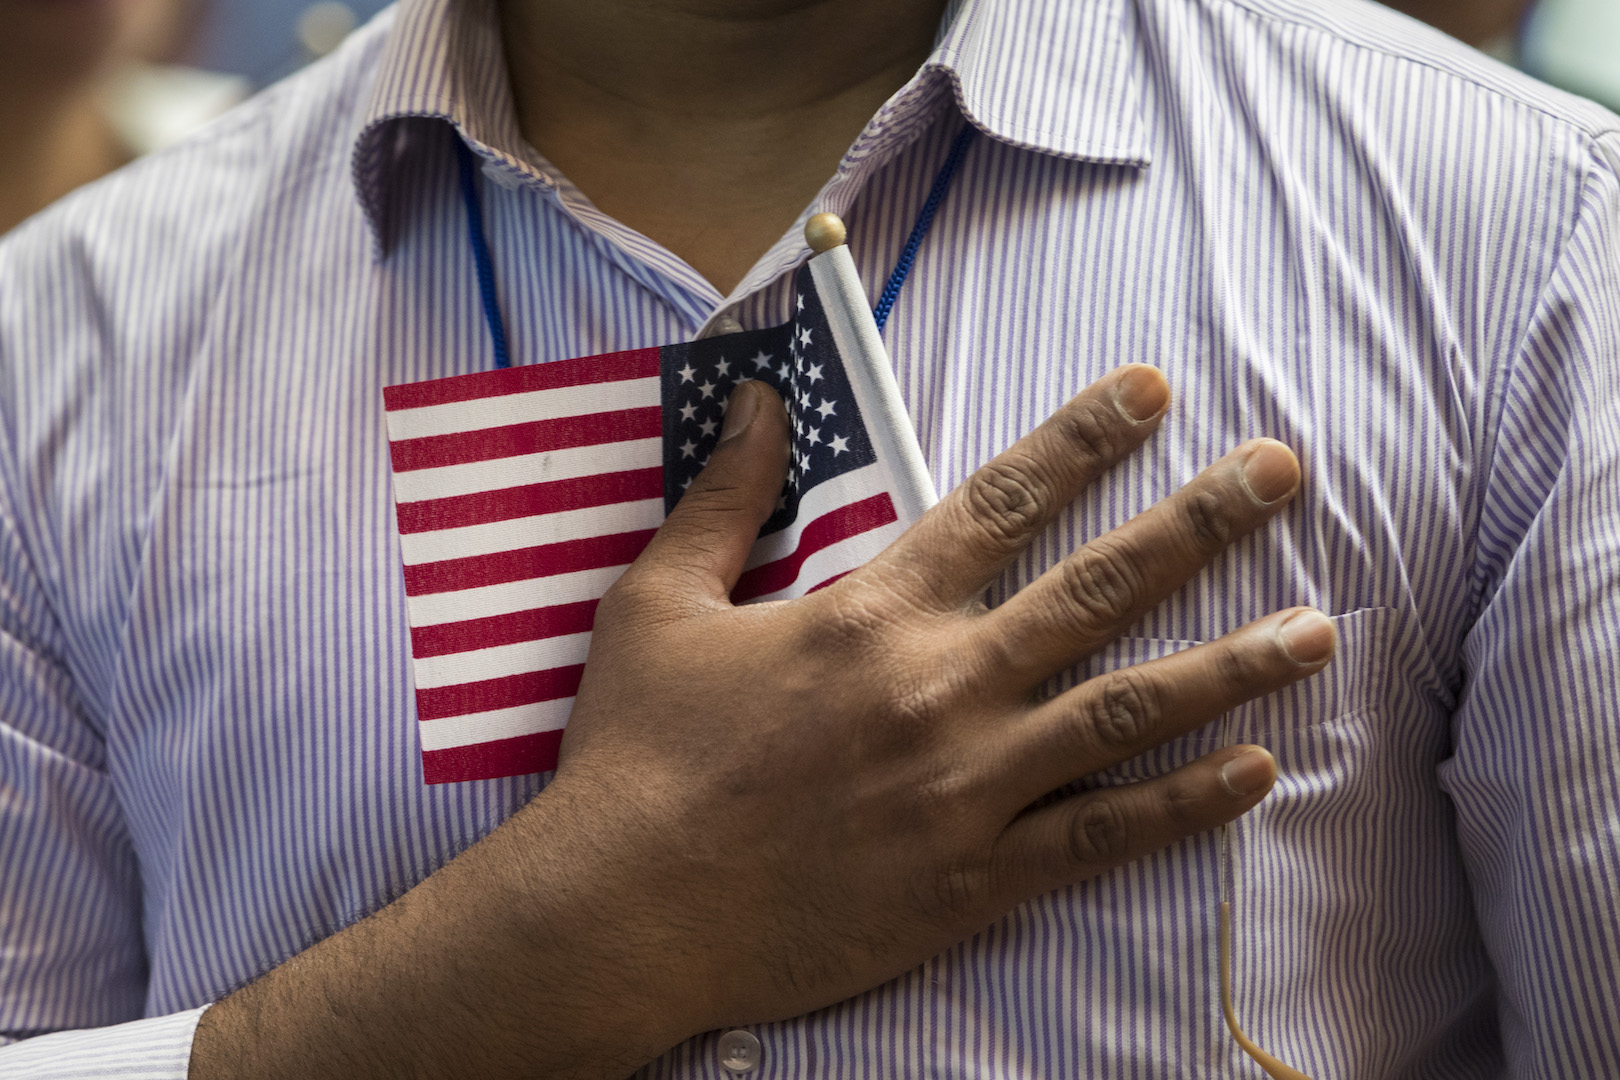 Court docket Rules Trump Can Deport 300,000 Migrants Who've Lived in the U.S. Legally for Years